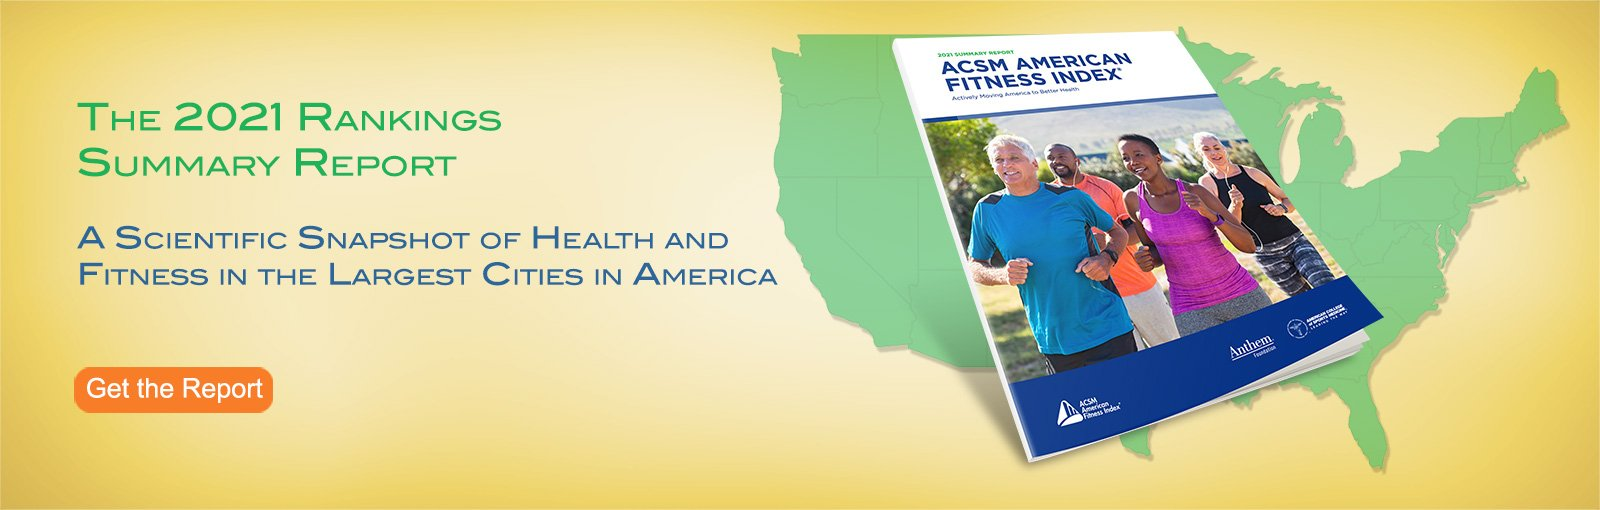 american-fitness-index-the-2021-rankings-summary-report-a-scientific-snapshot-of-health-and-fitness-in-the-largest-cities-in-america